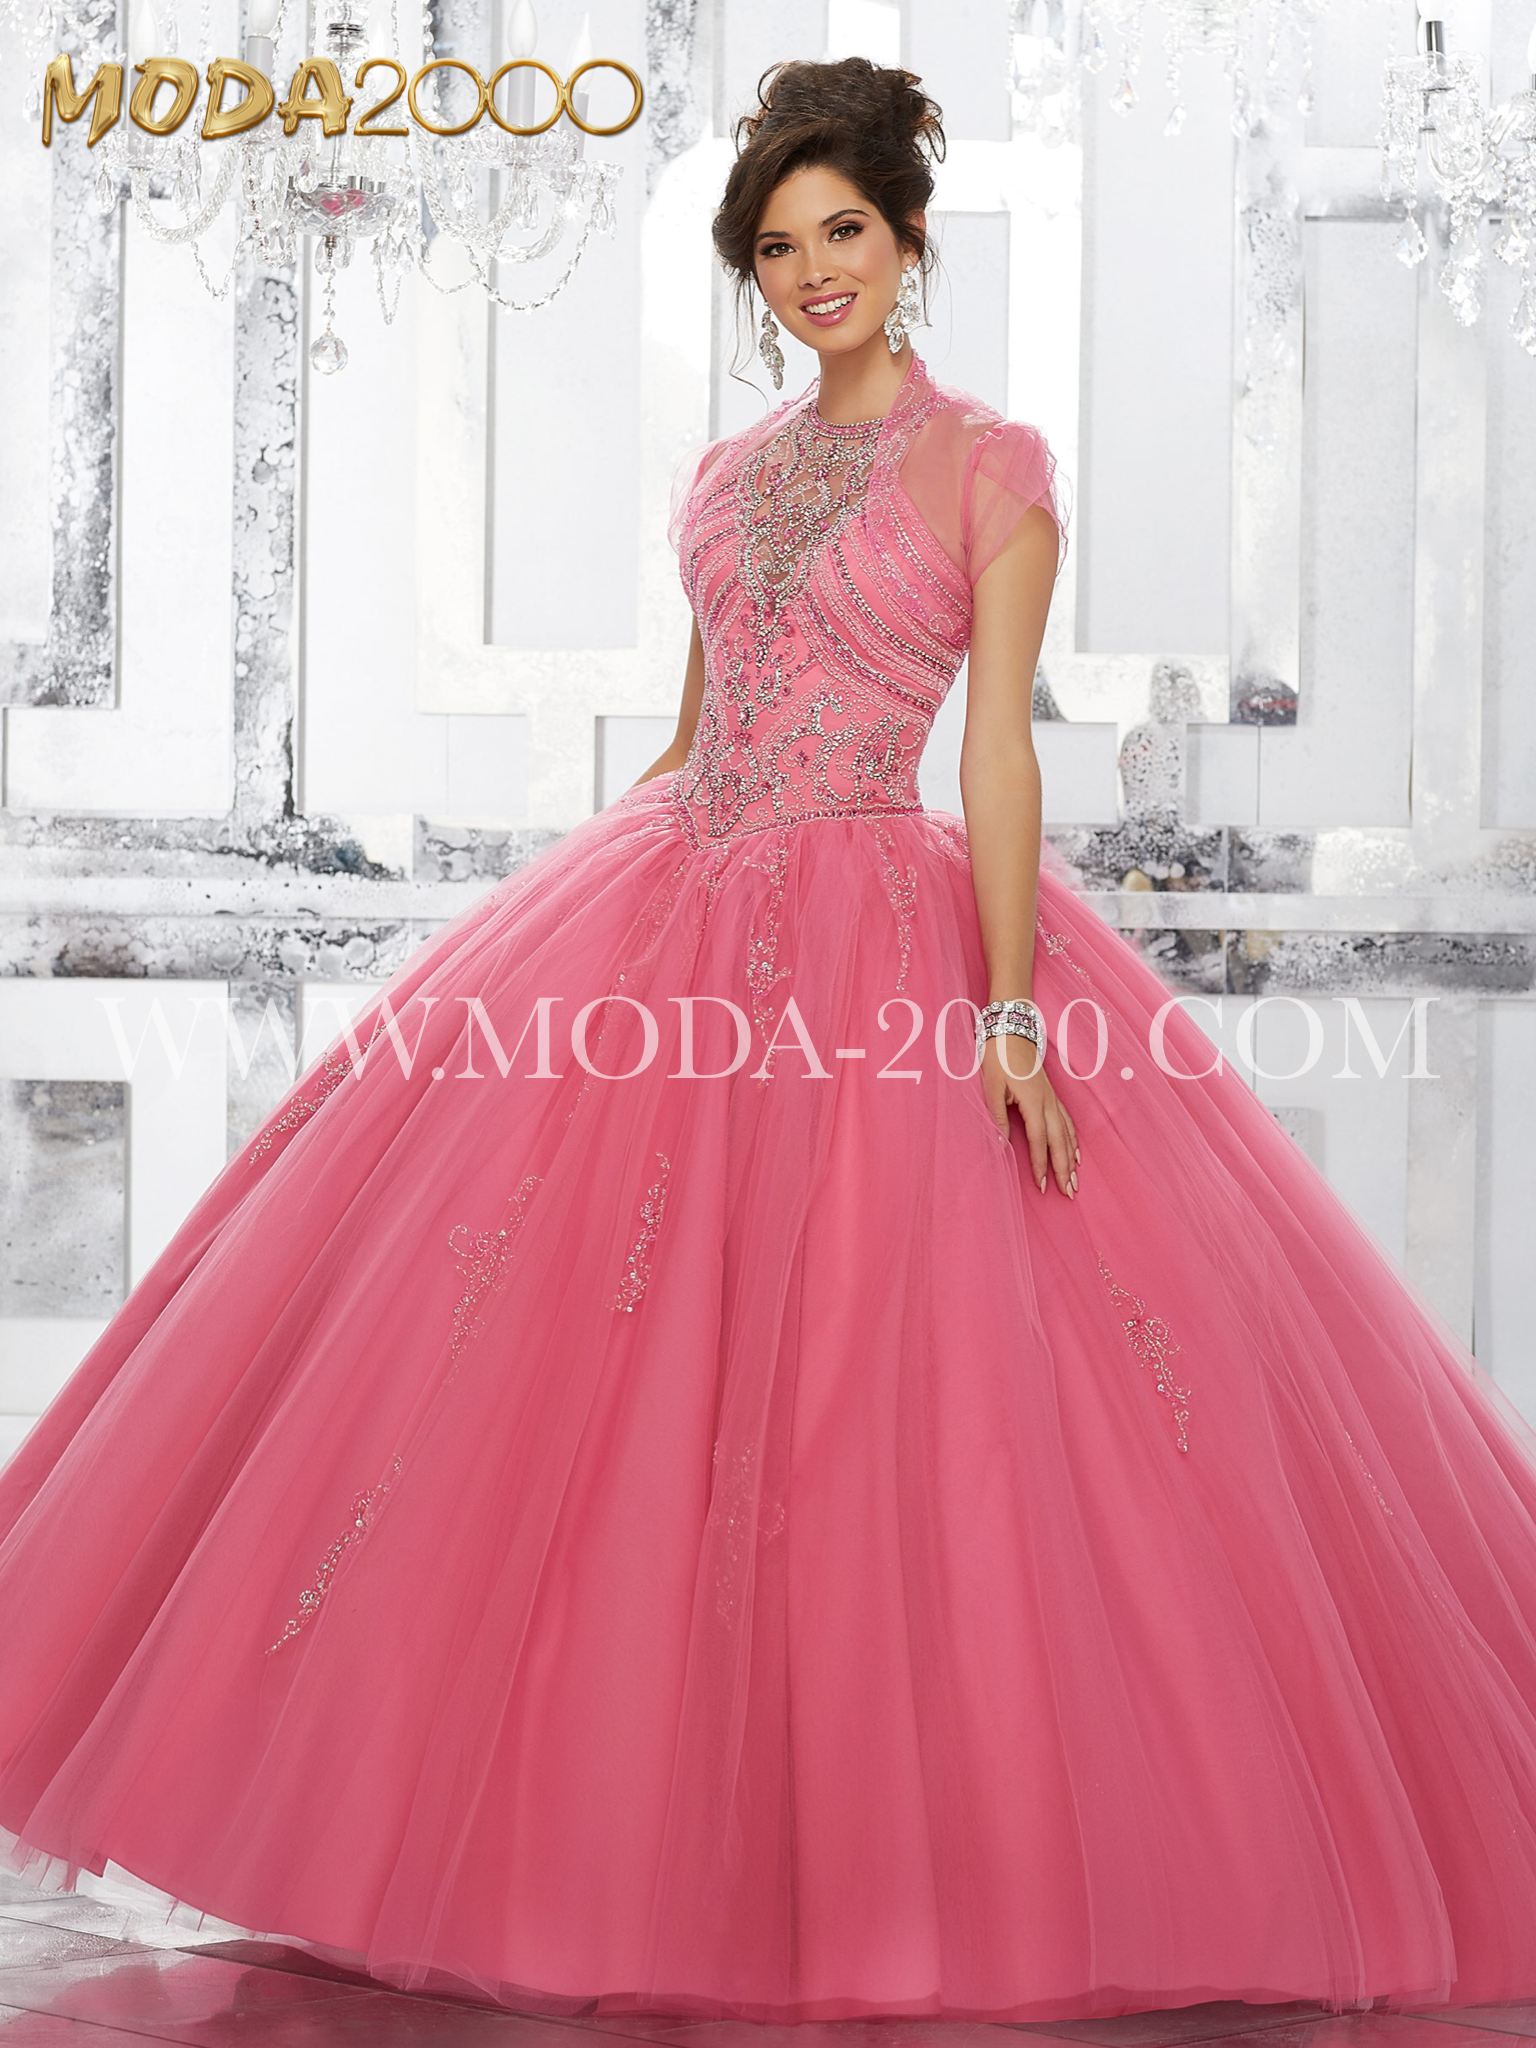 Pink | Elegant and beautiful quinceañera dresses. Find the dress of ...